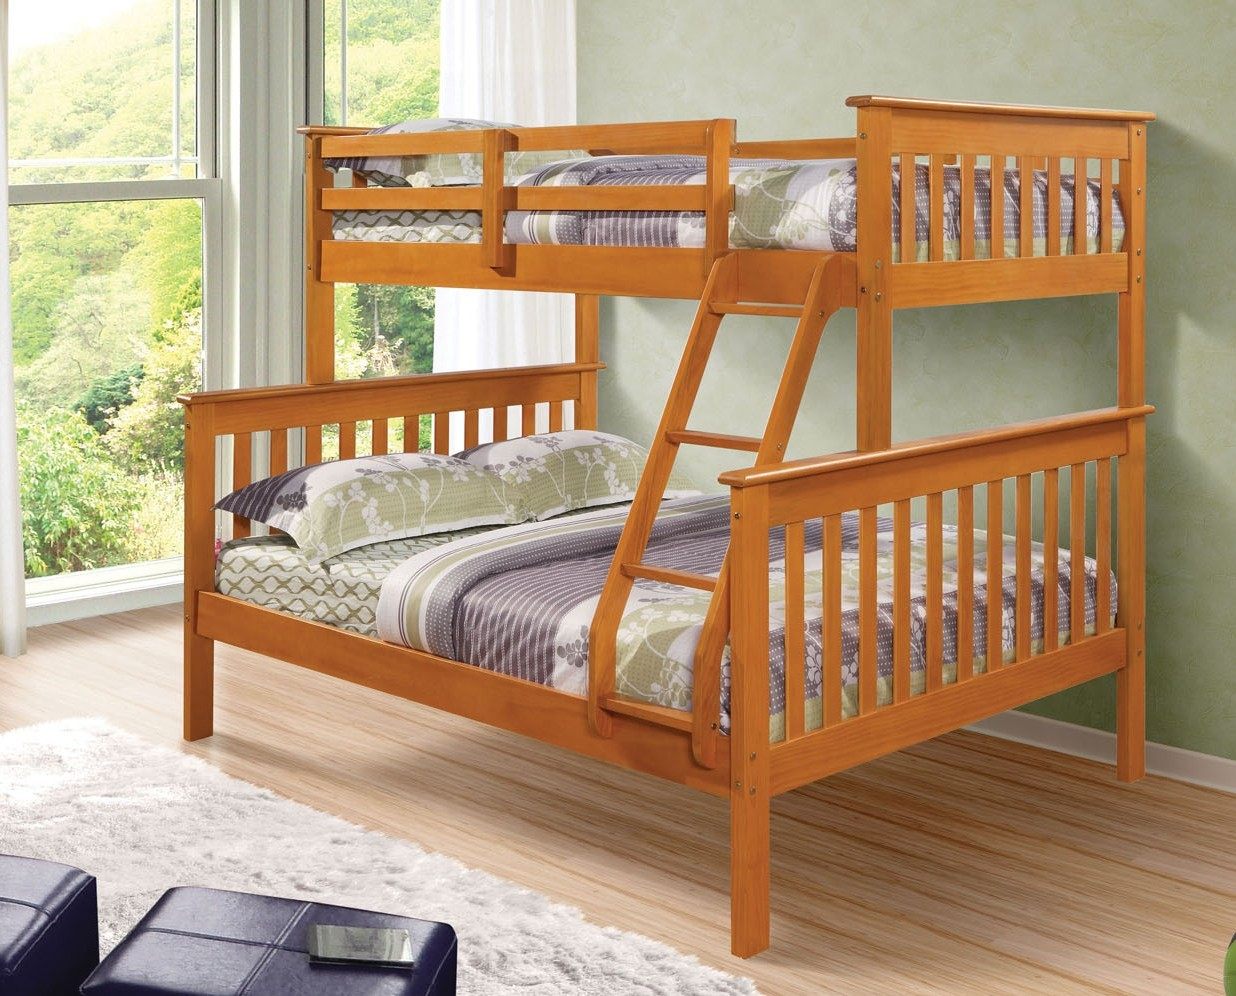 122-3H_TF_Mission Bunk Bed